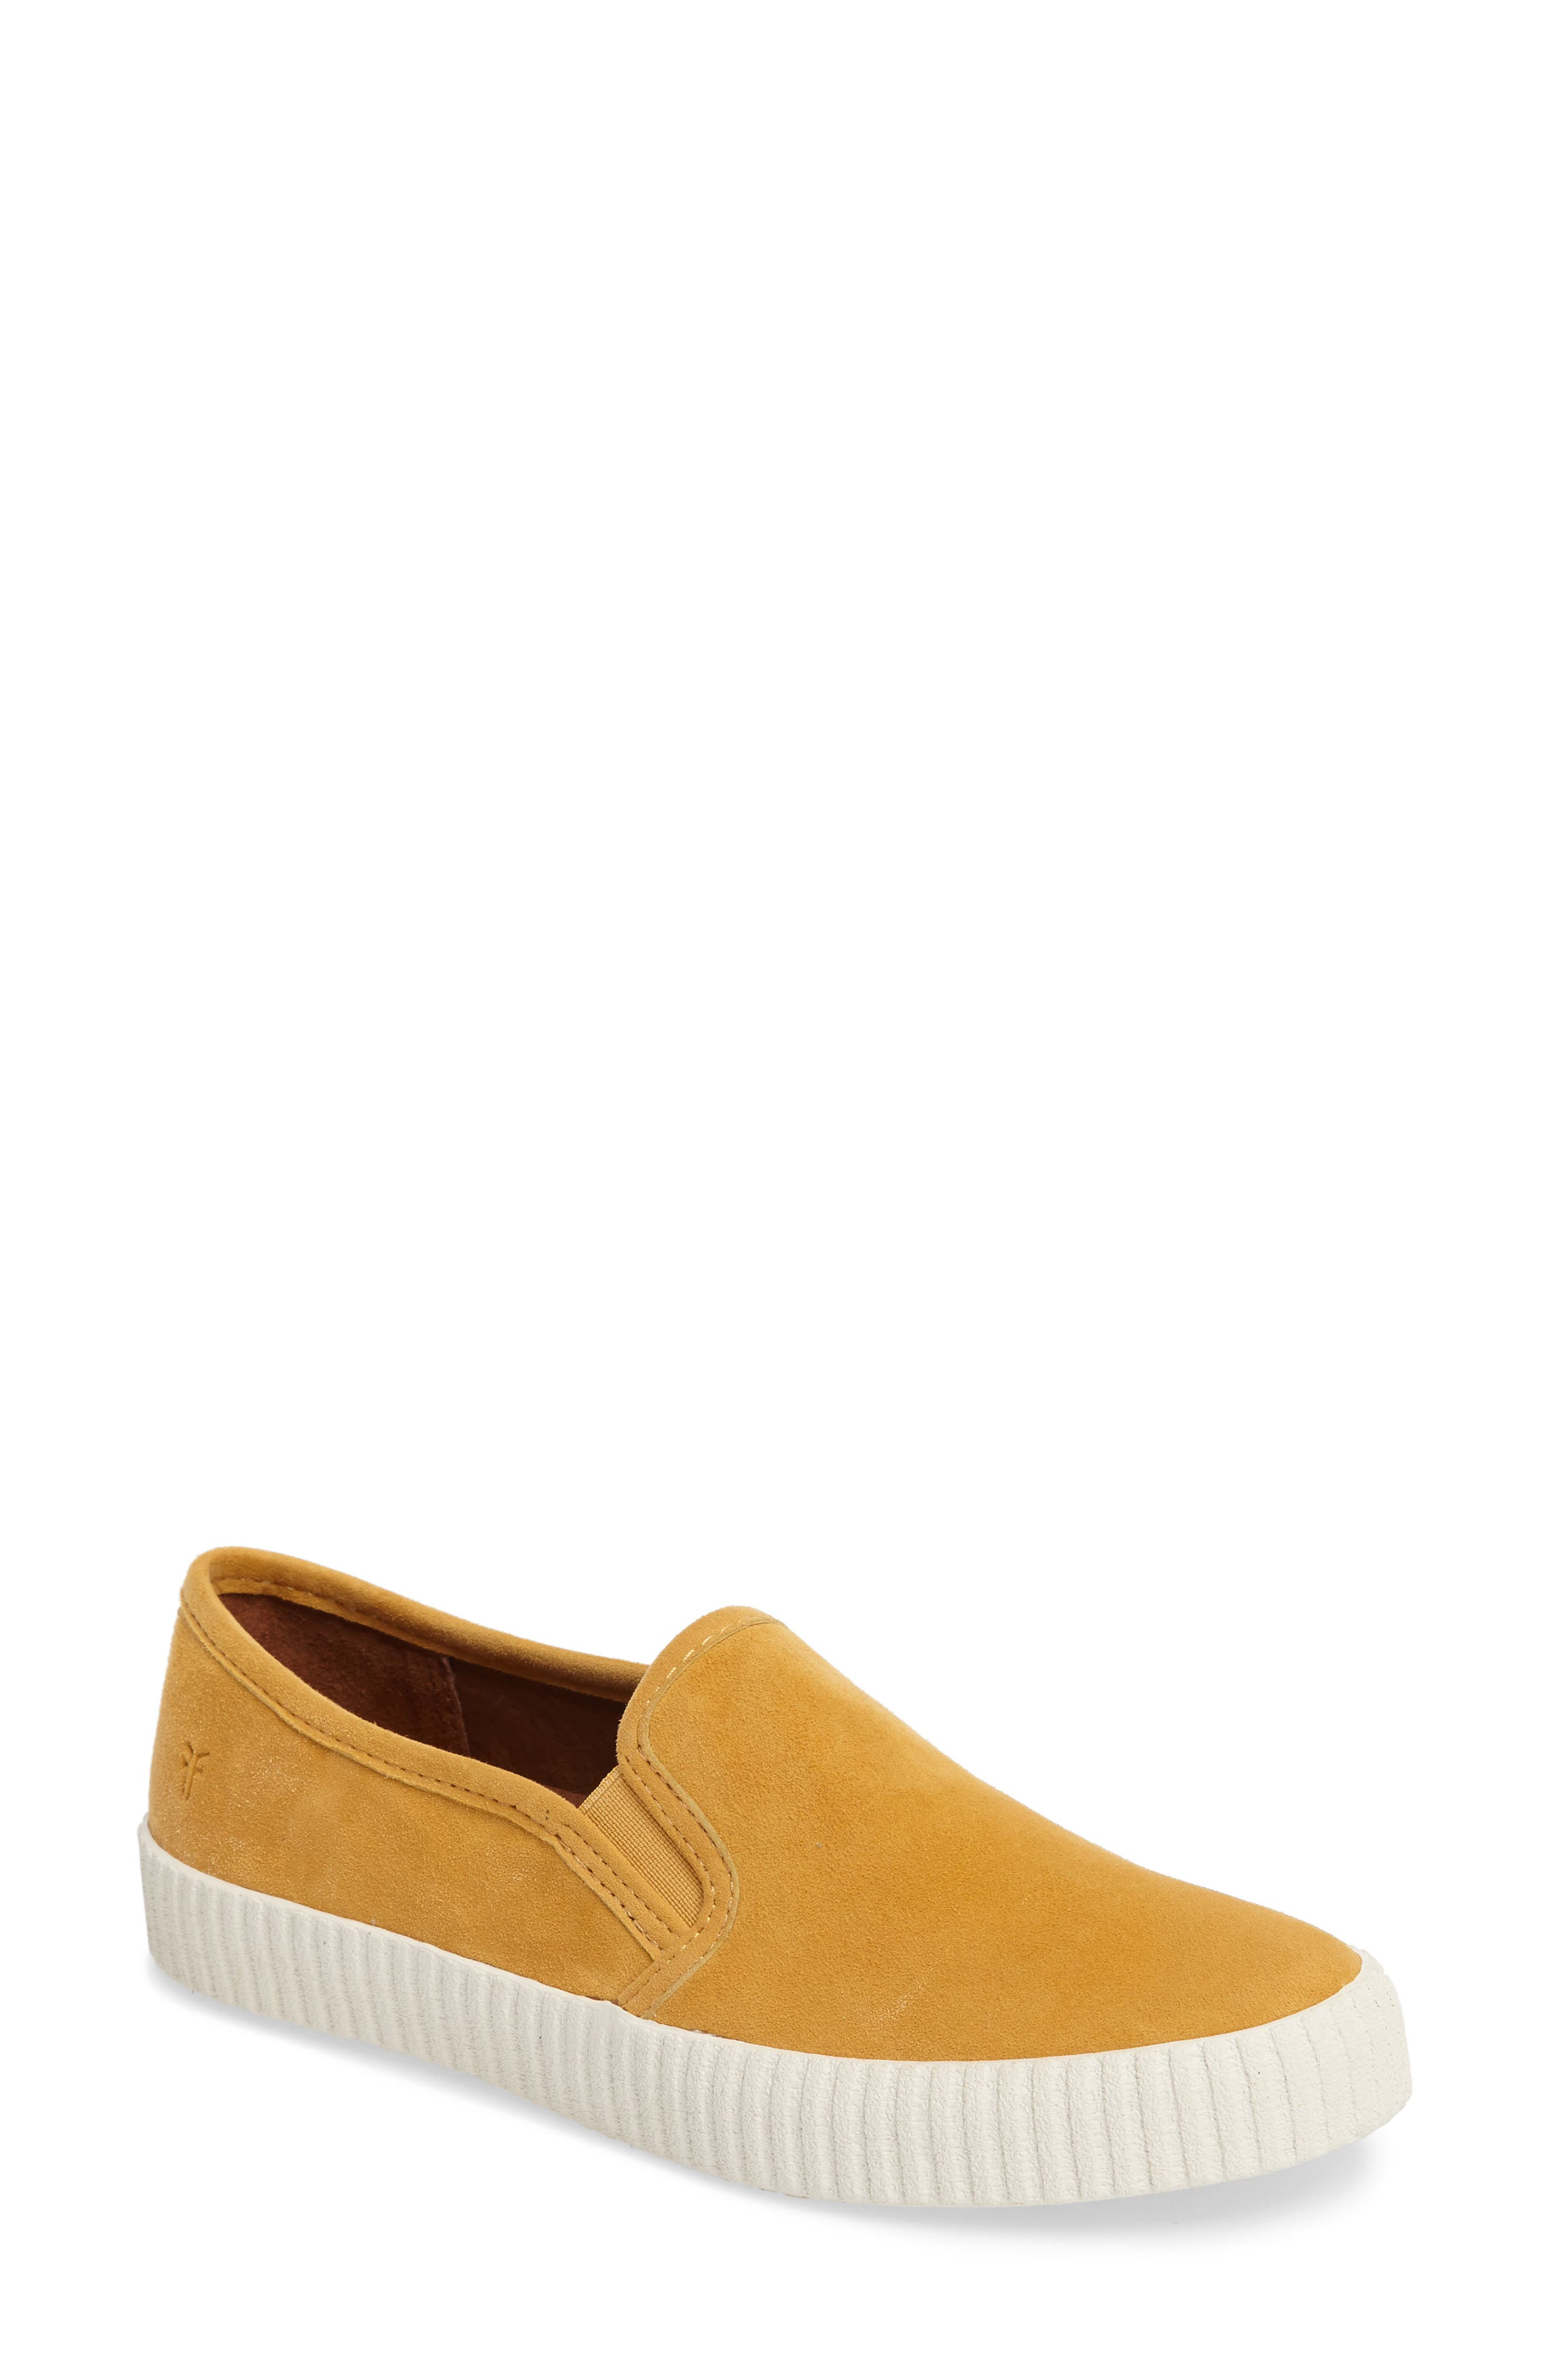 Camille Slip-On Sneaker,                             Main thumbnail 1, color,                             Yellow